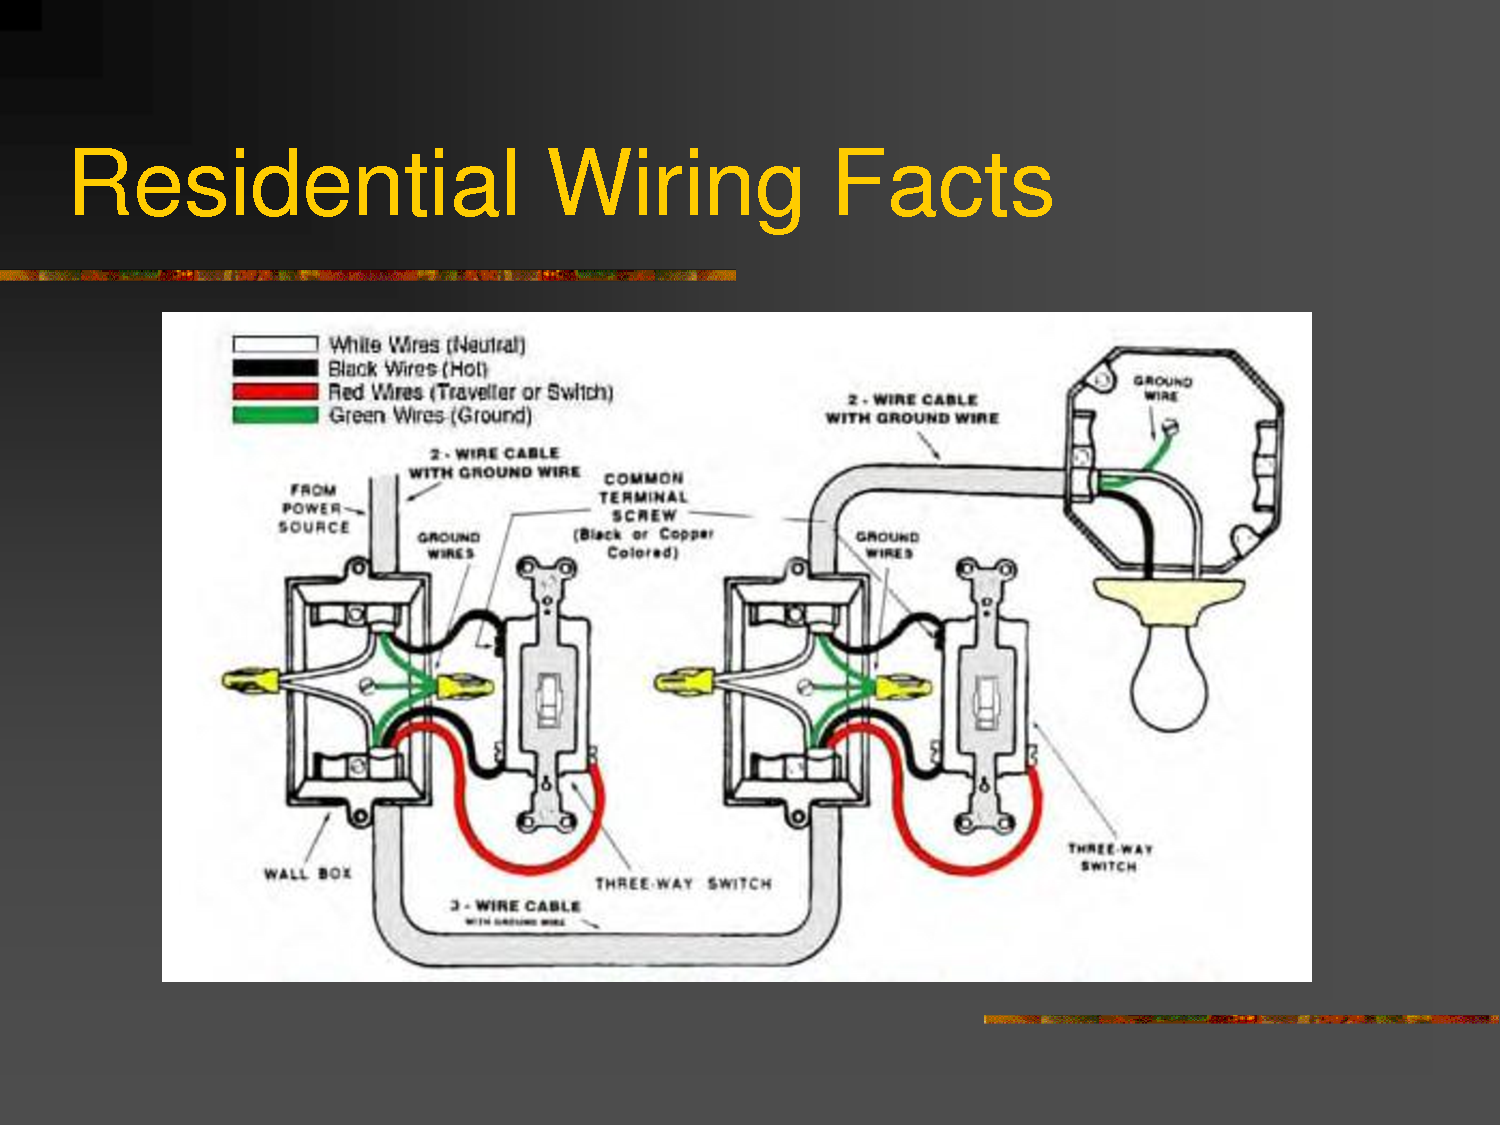 4 Best Images of Residential Wiring Diagrams - House Electrical ...